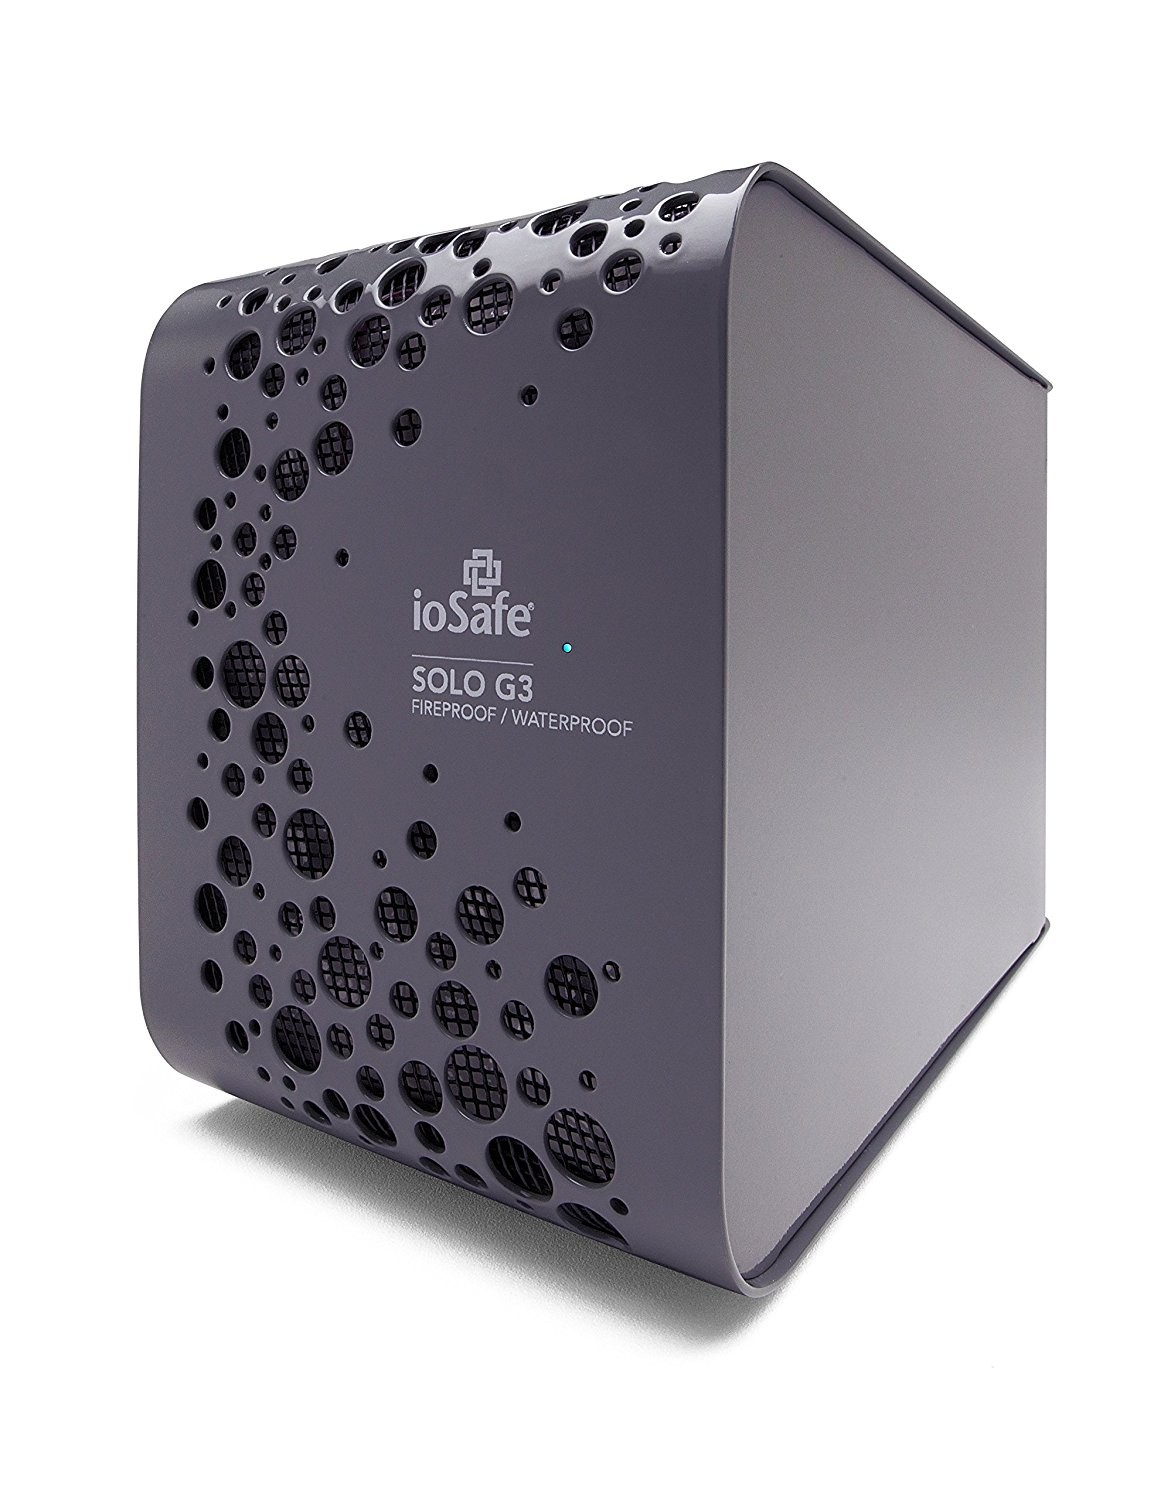 Image 1 of ioSafe Solo G3 4Tb Fireproof & Waterproof USB 3.0 HDD -for home/ SOHO, 1 yr hardware wty & 1 yr SK4TB